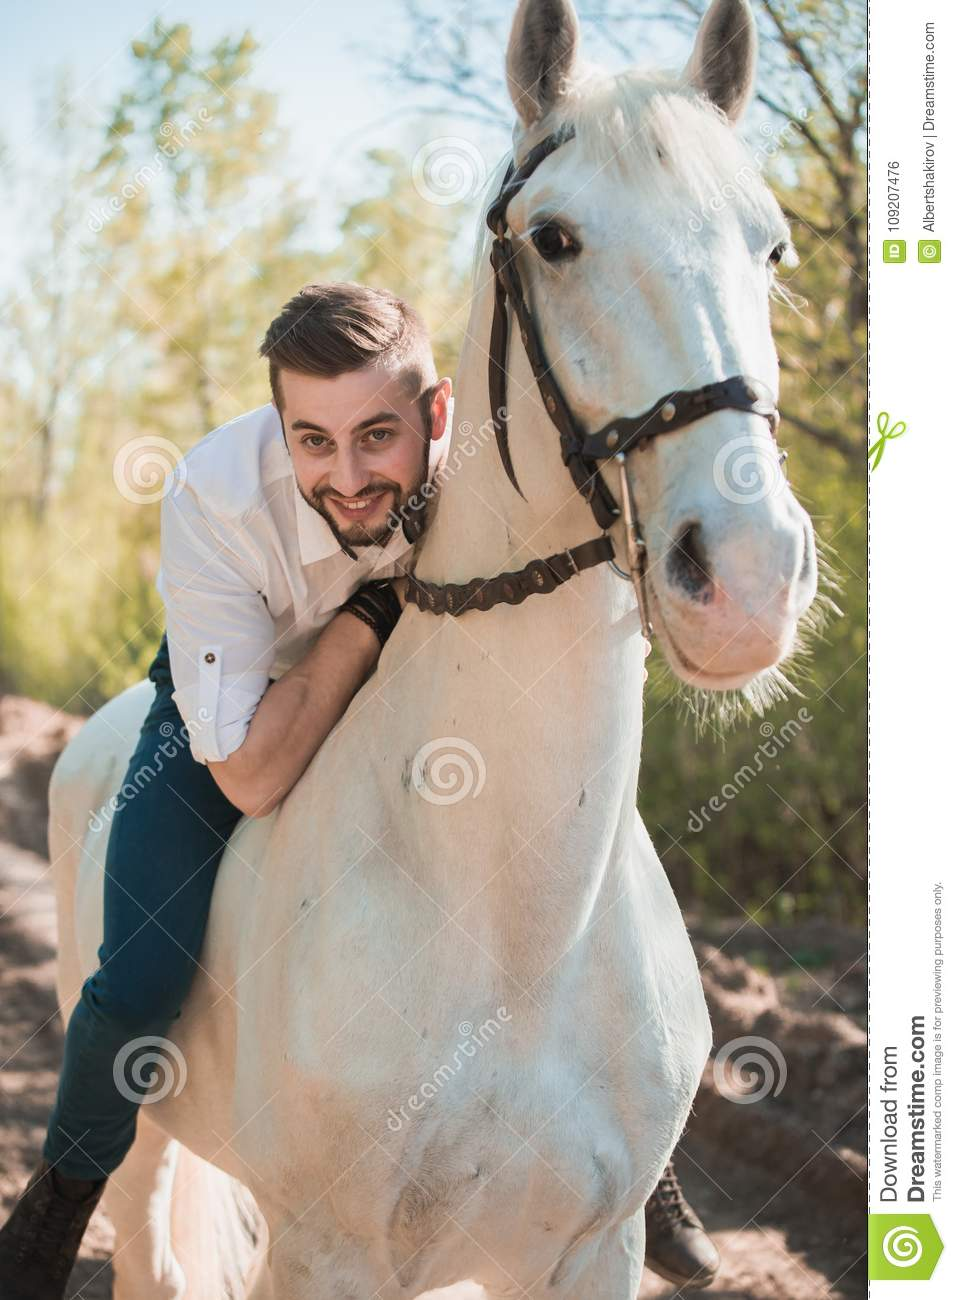 Horse Man Posing Riding Photos Free Royalty Free Stock Photos From Dreamstime